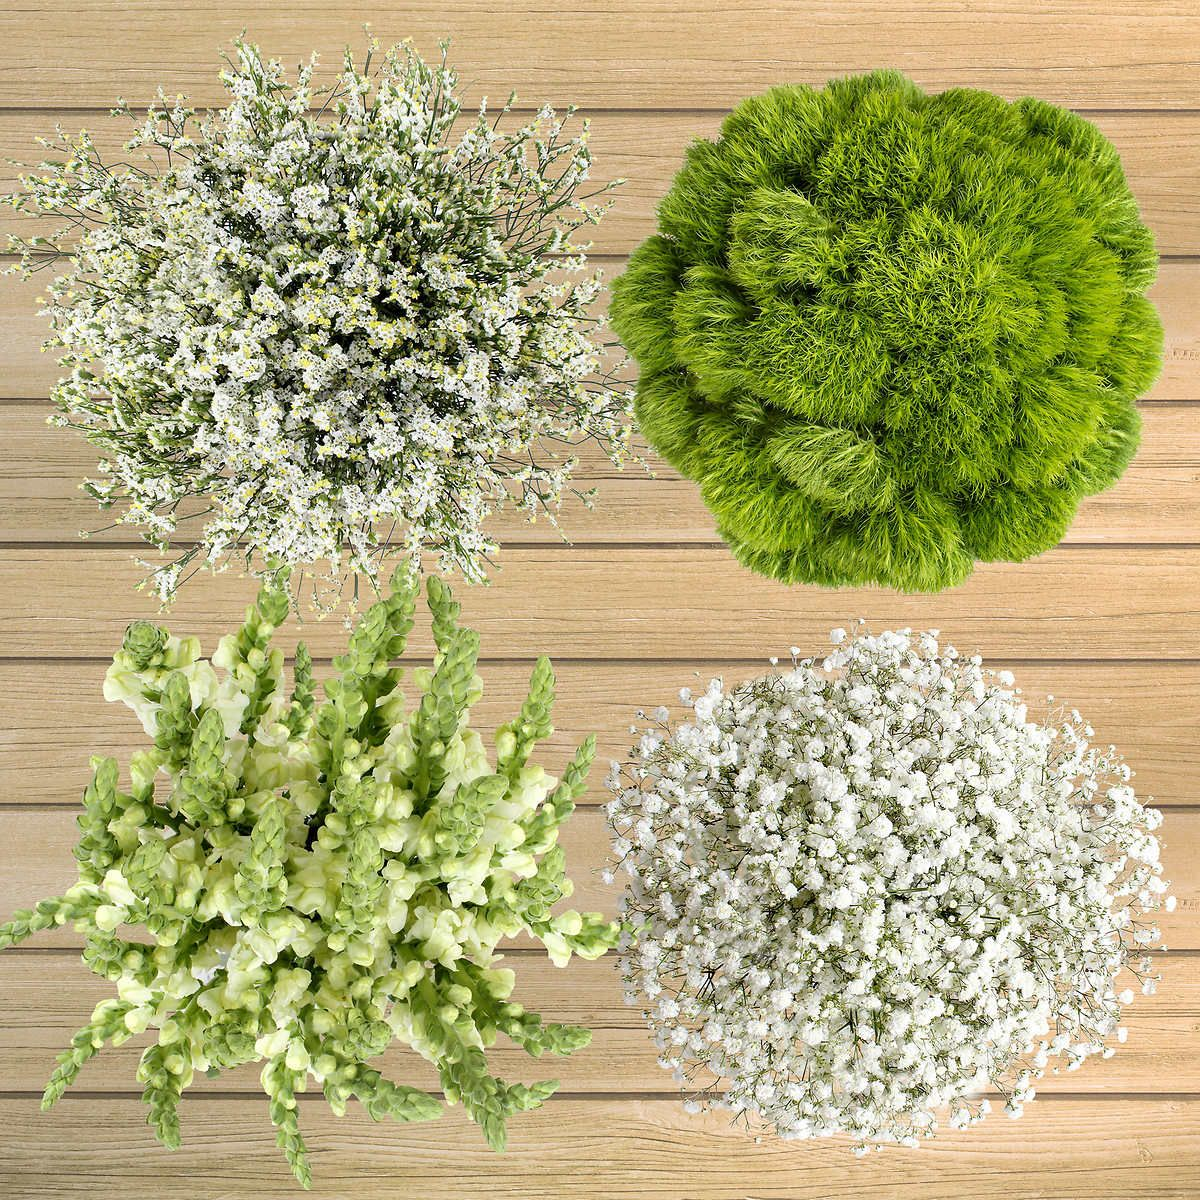 100 Stem White And Green Fillers Costco Flowers Red White